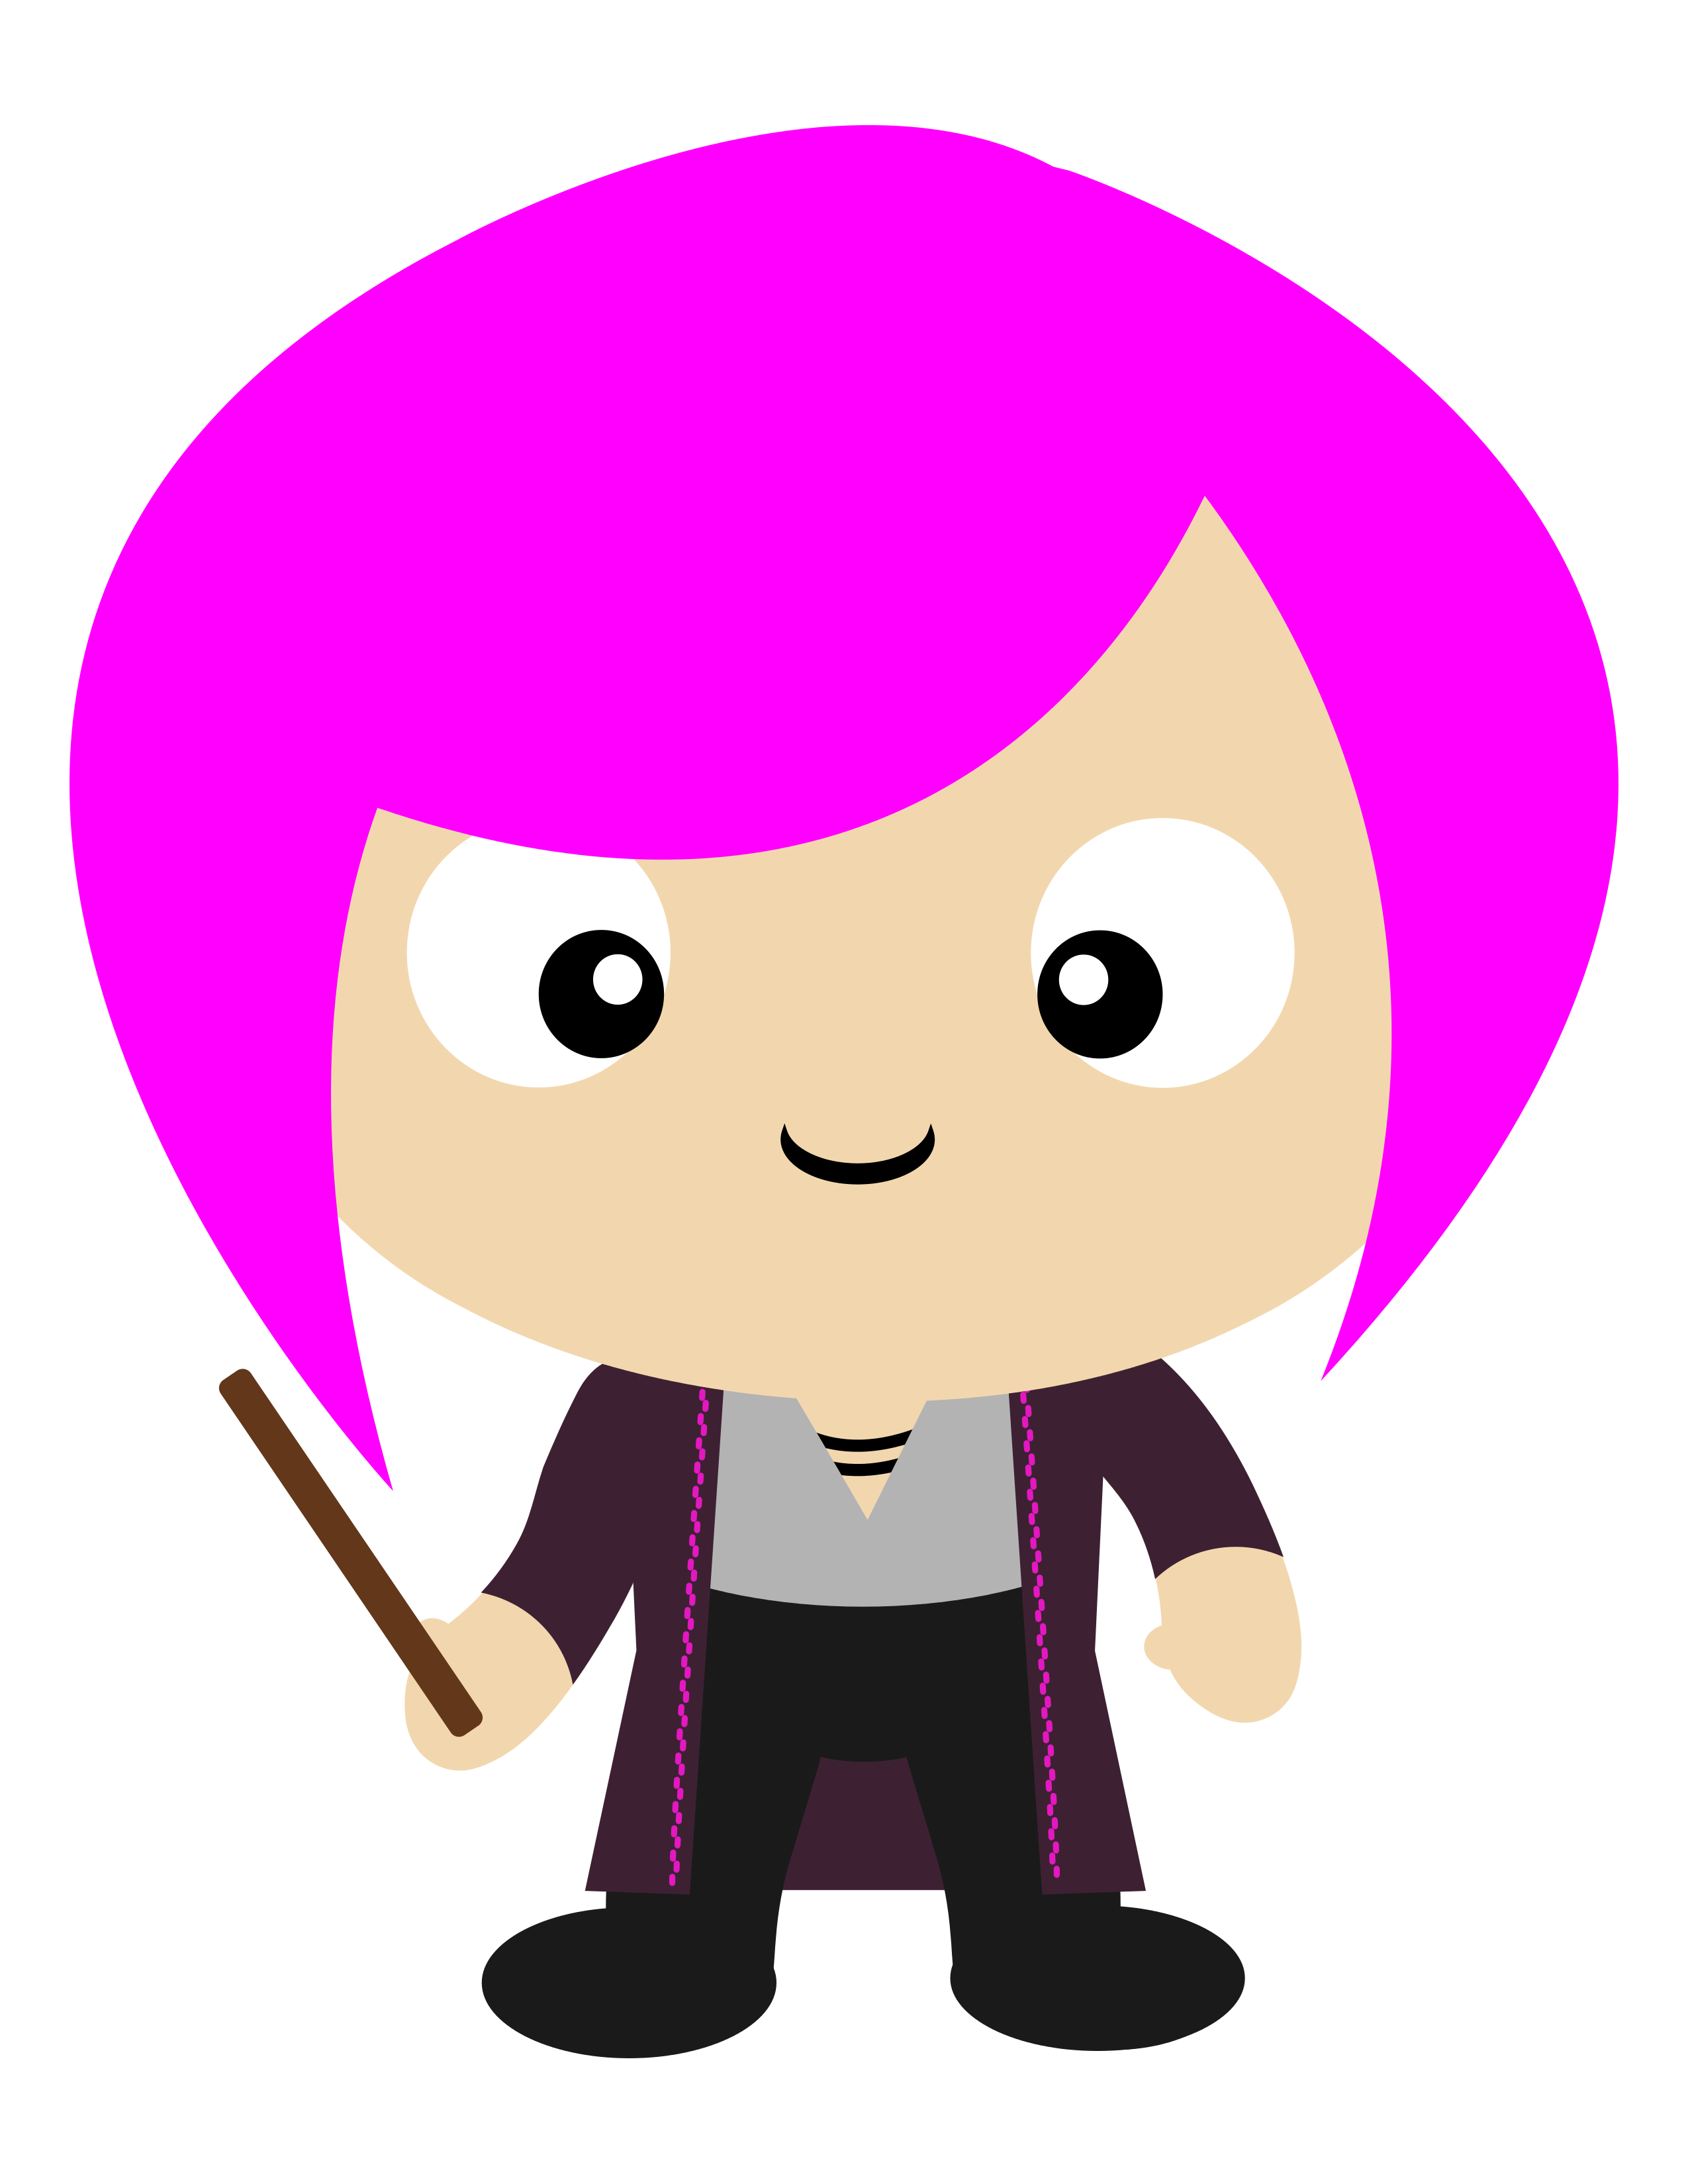 2550x3300 Nymphadora Tonks, The Pink Form. One Of The Best Characters